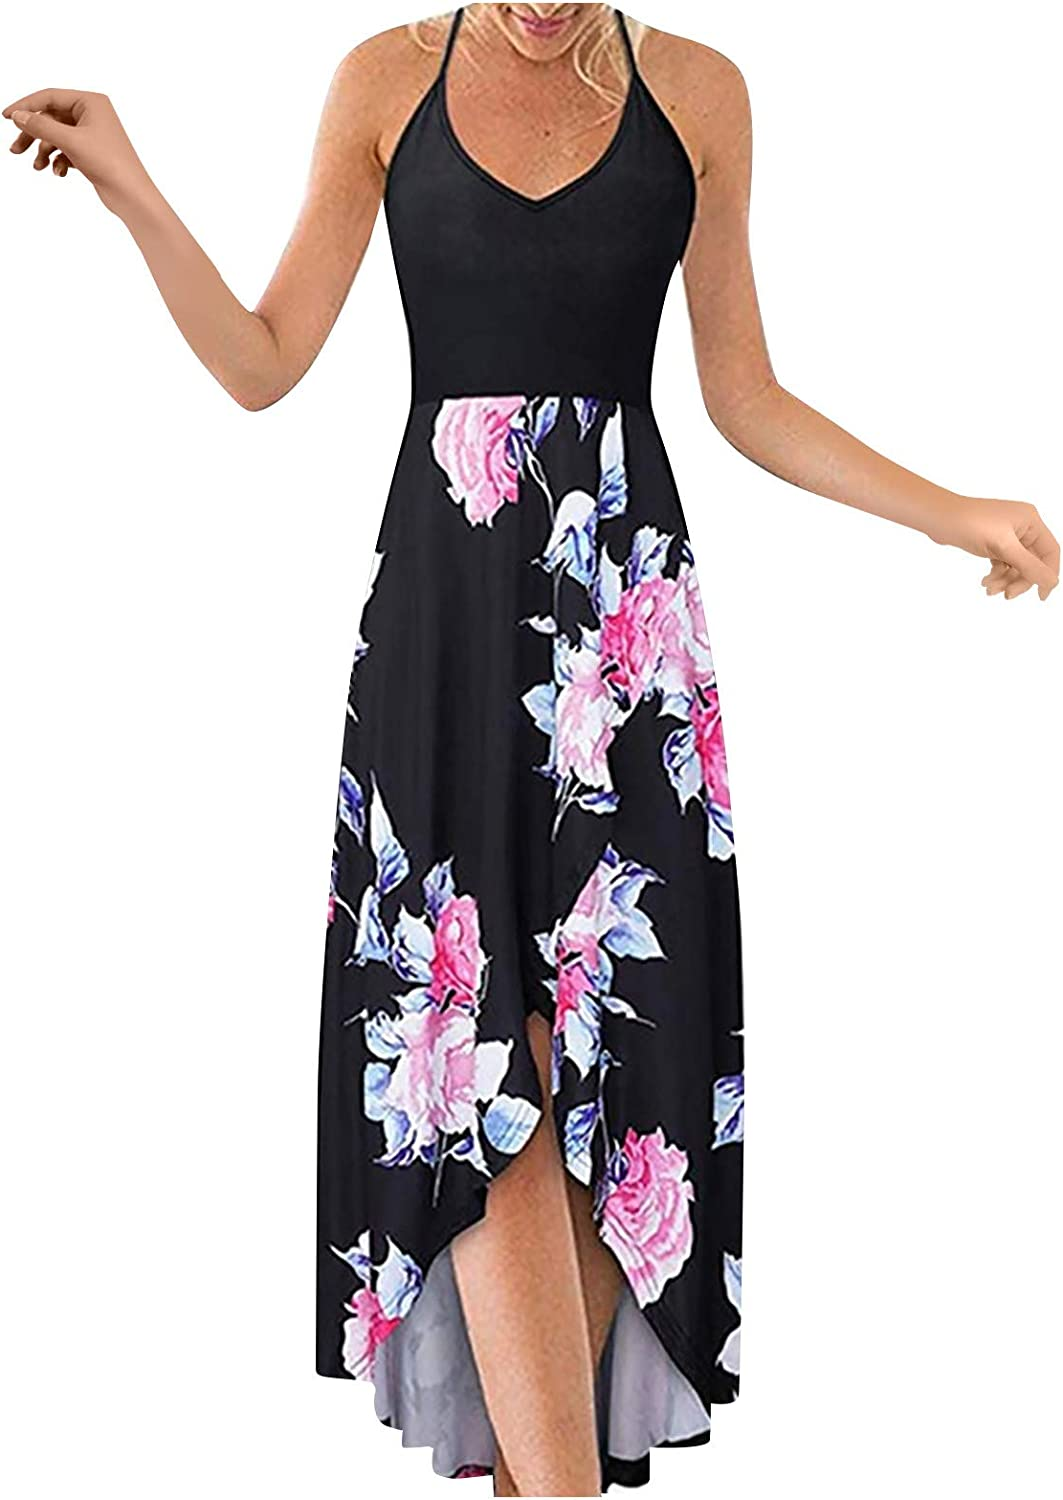 Plus Size Maxi Dresses for Women,Ladies Summer Dresses Casual Sleeveless Loose V-Neck Long Beach Party Dresses with Pockets